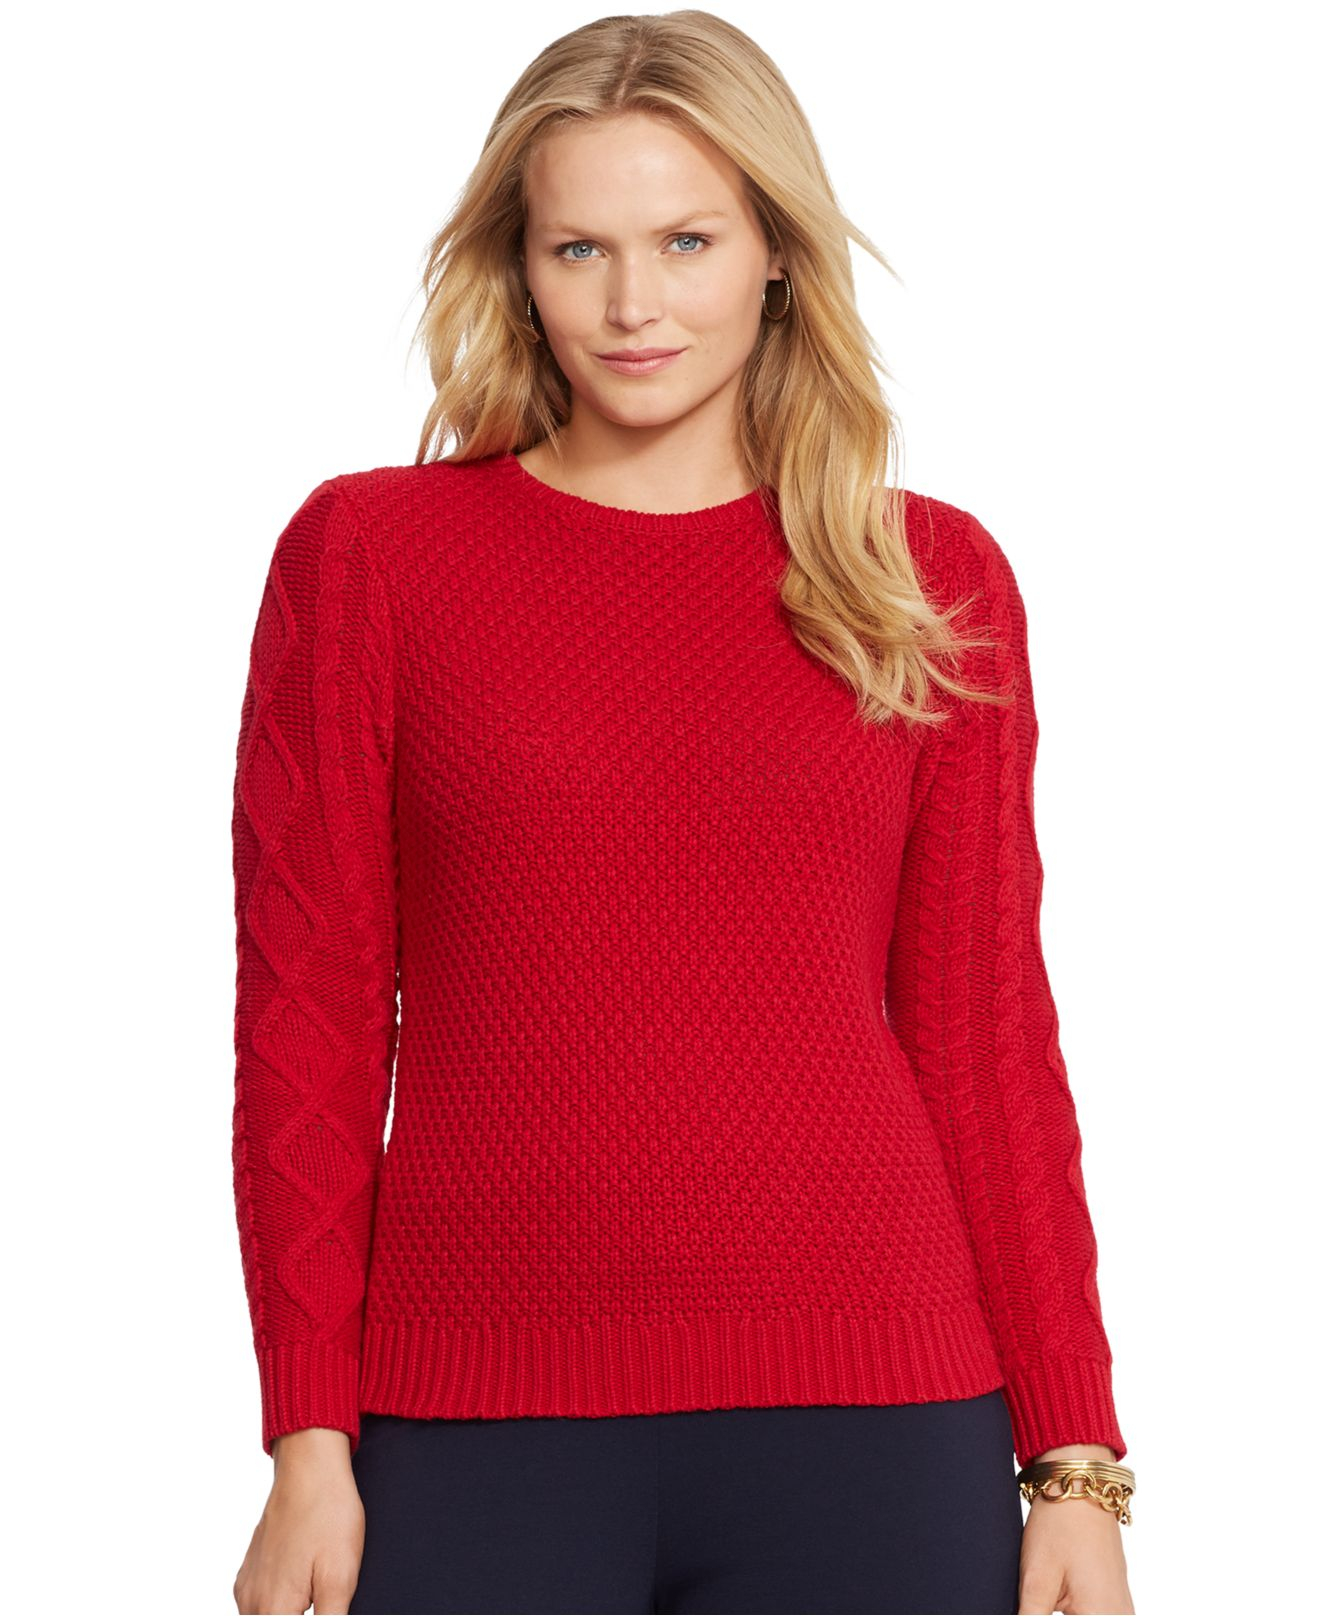 Lauren by ralph lauren Plus Size Cable-Knit Sweater in Red ...